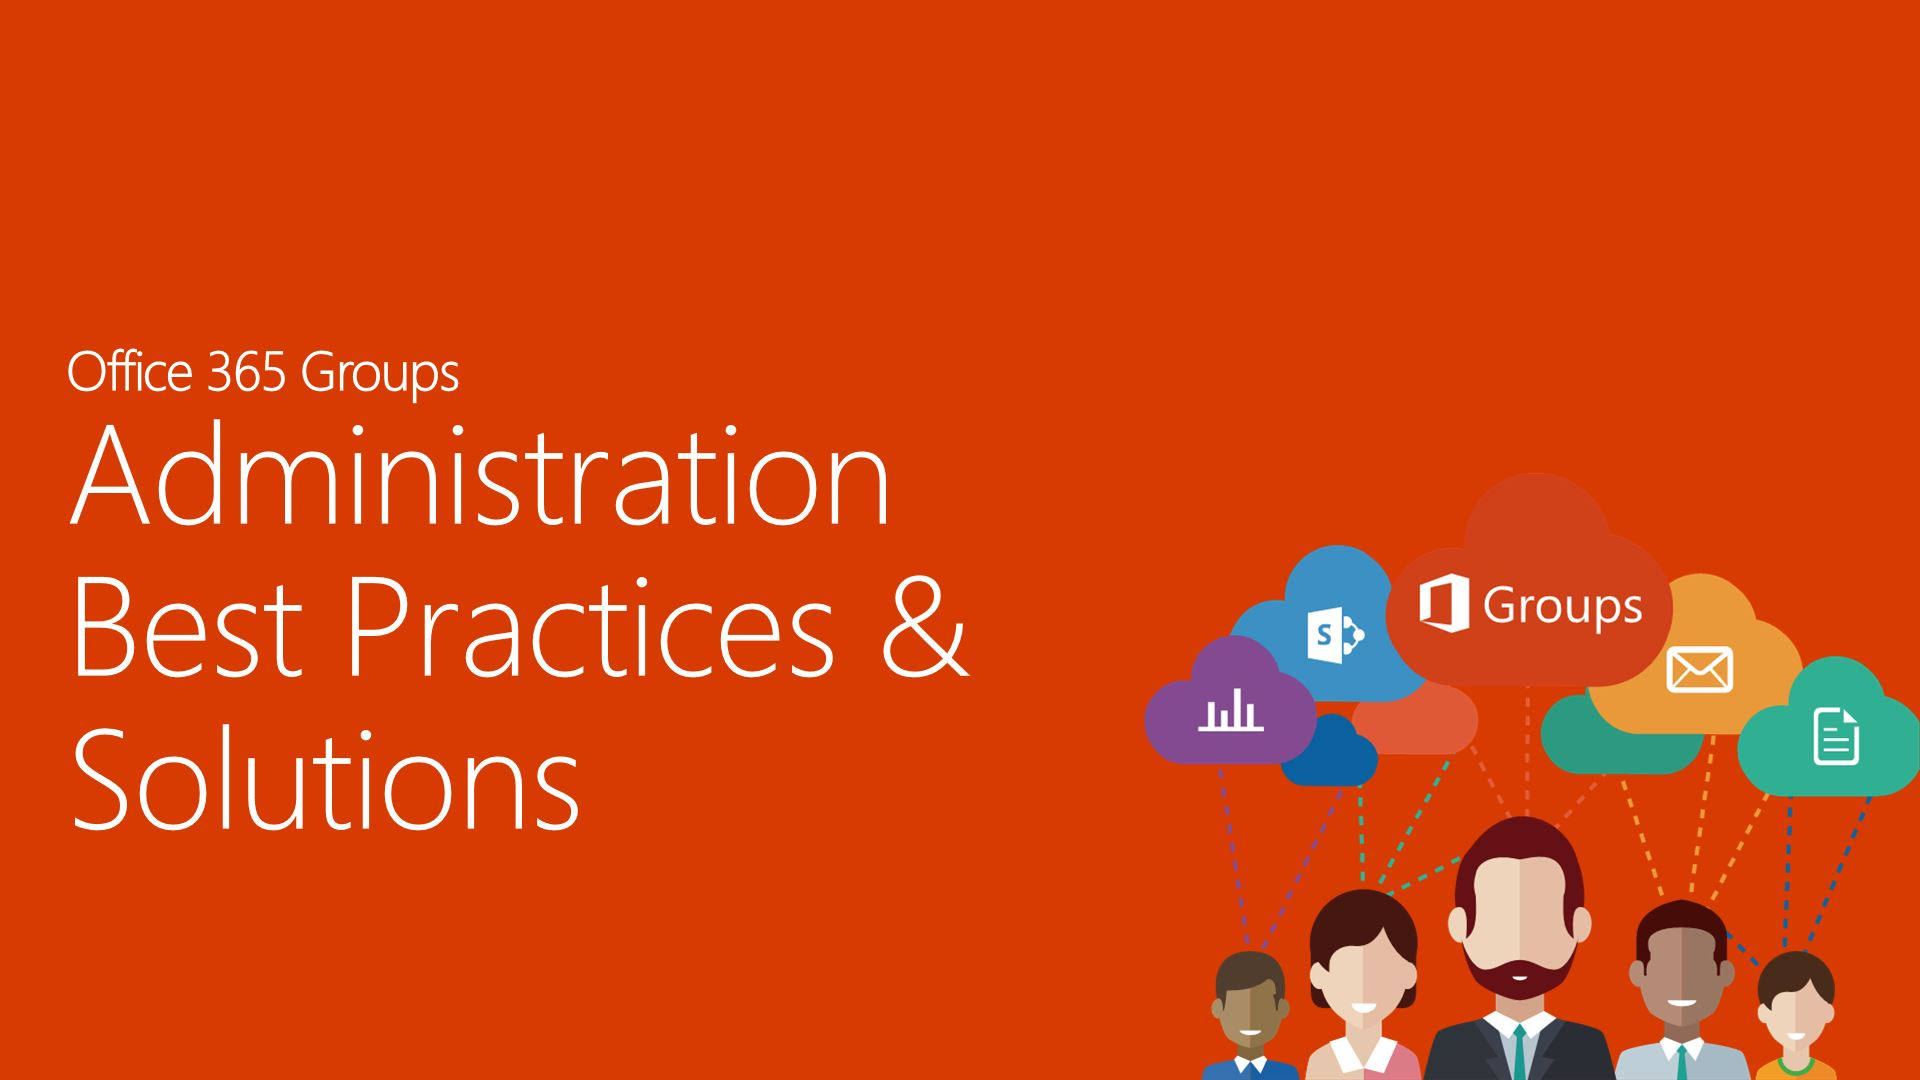 Administration Best Practices & Solutions